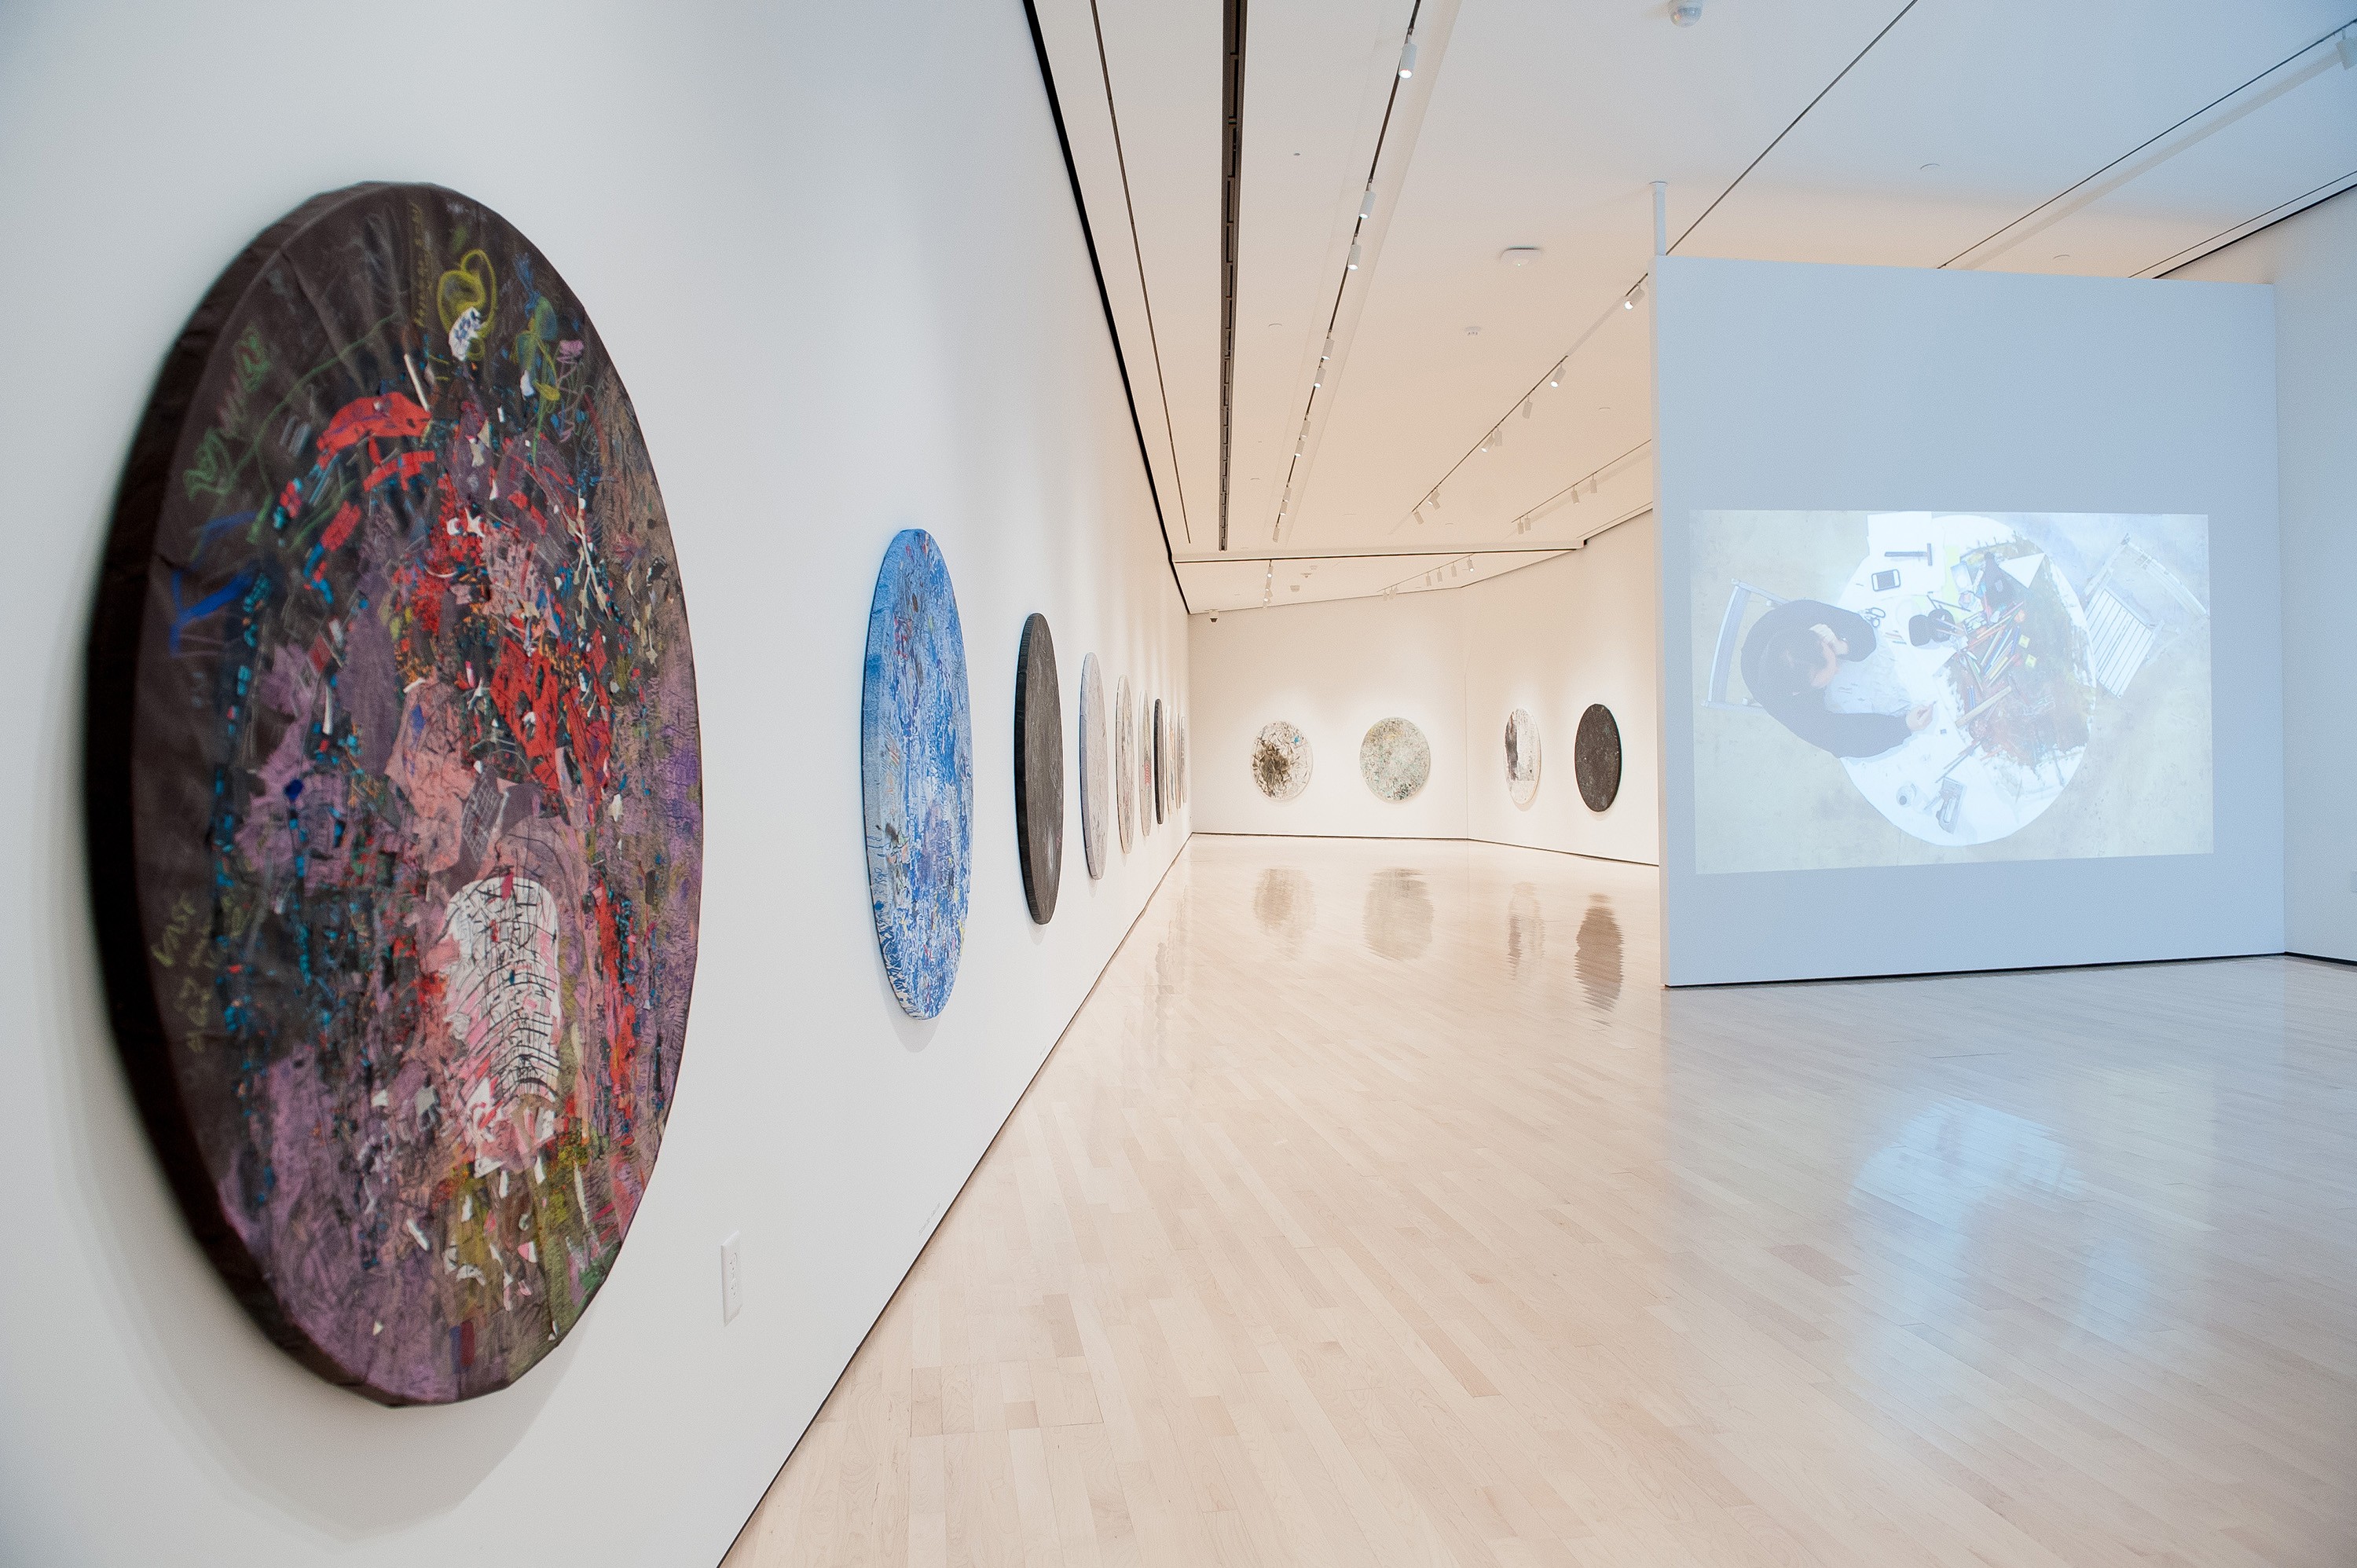 <i>Guillermo Kuitca: Diarios</i>, installation view at the Eli and Edythe Broad Art Museum at Michigan State University, 2013. Photo: Trumpie Photography